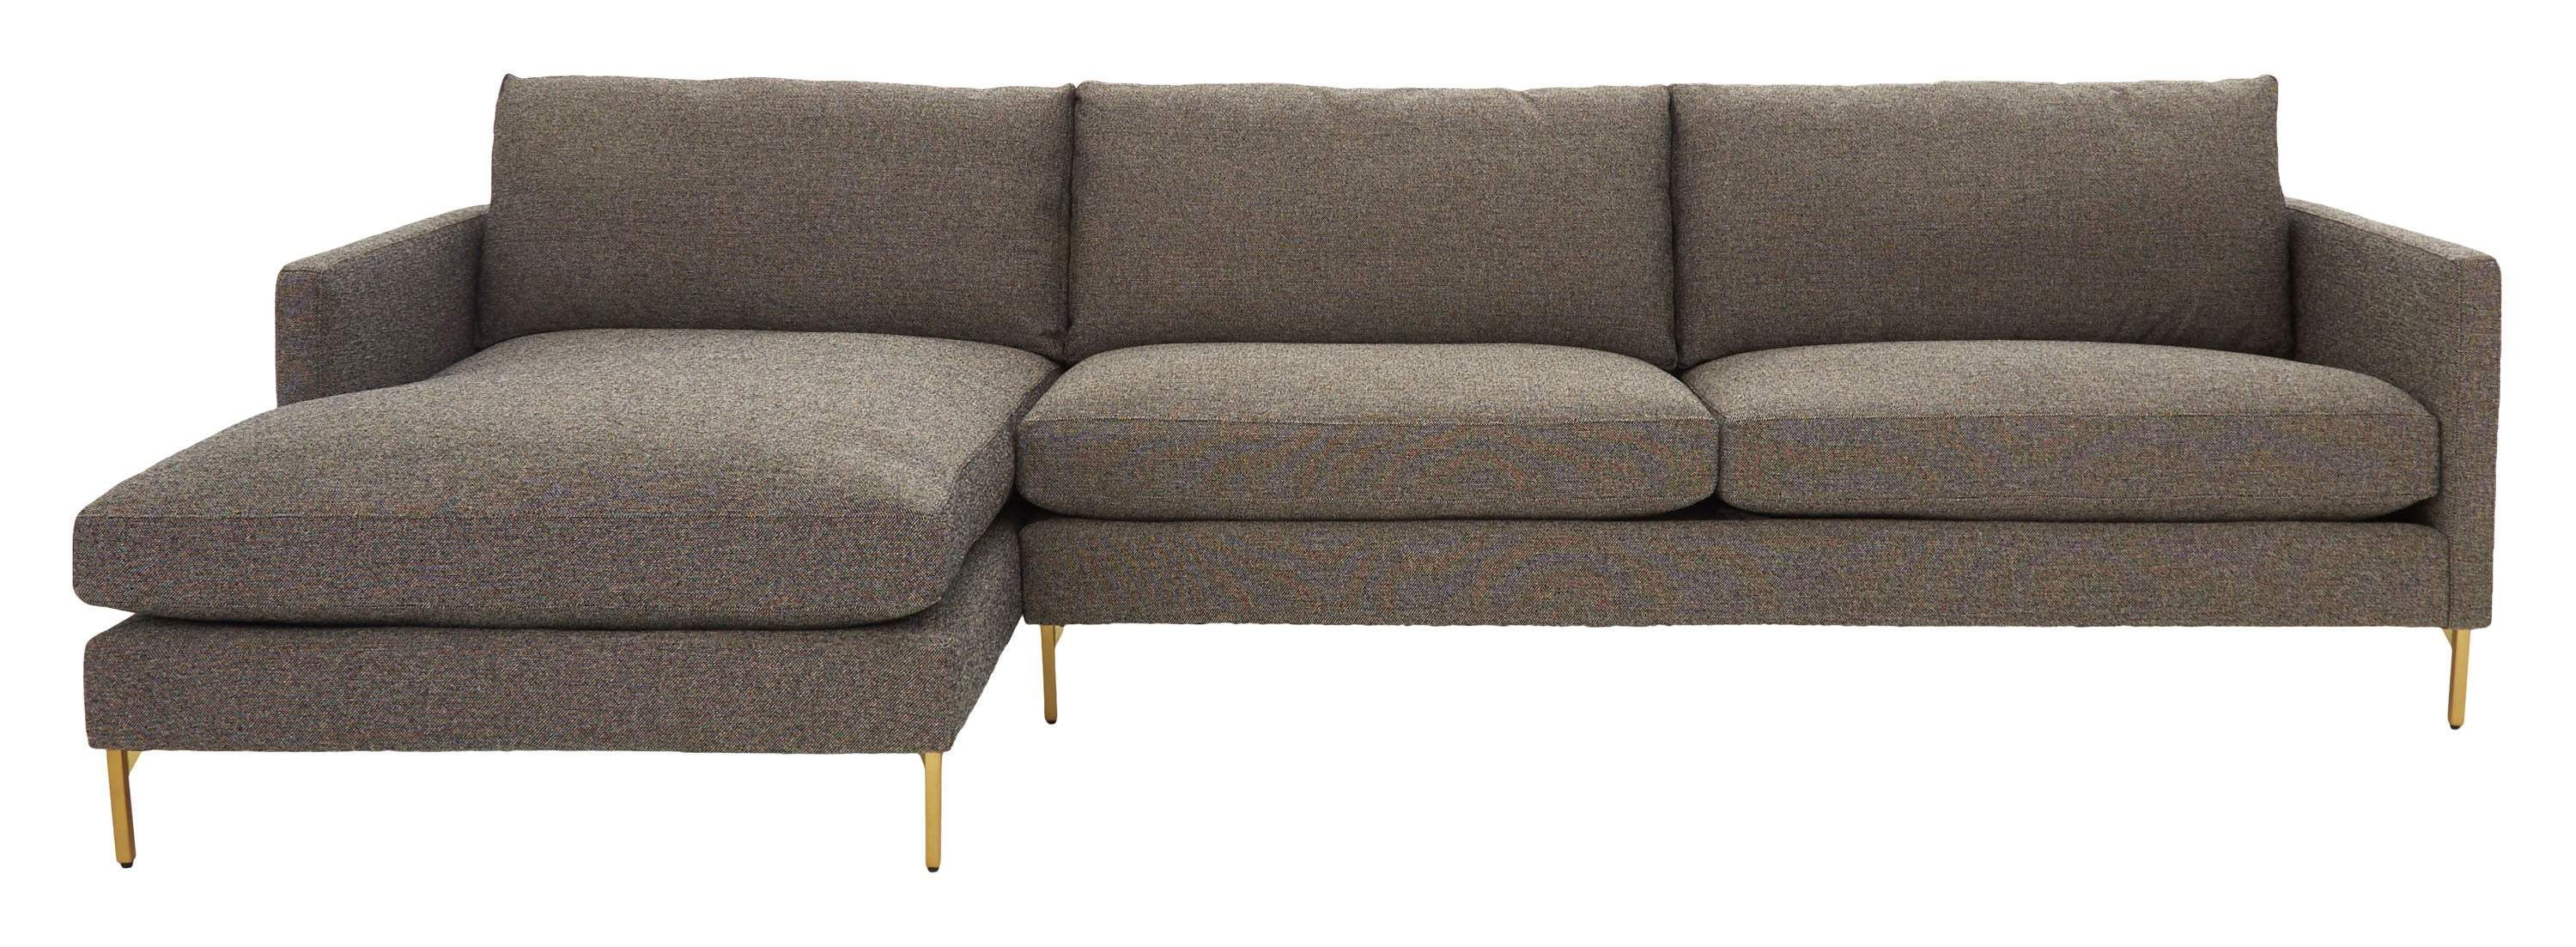 With its clean lines and classic silhouette, our Ryder Sectional brings just the right amount of retro wherever it goes. Inspired by mid-century design, this spacious piece pairs a sleek, streamlined silhouette with perfect proportions and thin brass legs for a chic pop of shine. But don't let its trim and tailored looks deceive you — Ryder is made for relaxing, with soft yet supportive seat cushions, plush, sink-in back cushions and a low profile. Great for lazy weekend lounging, it's a must-ha